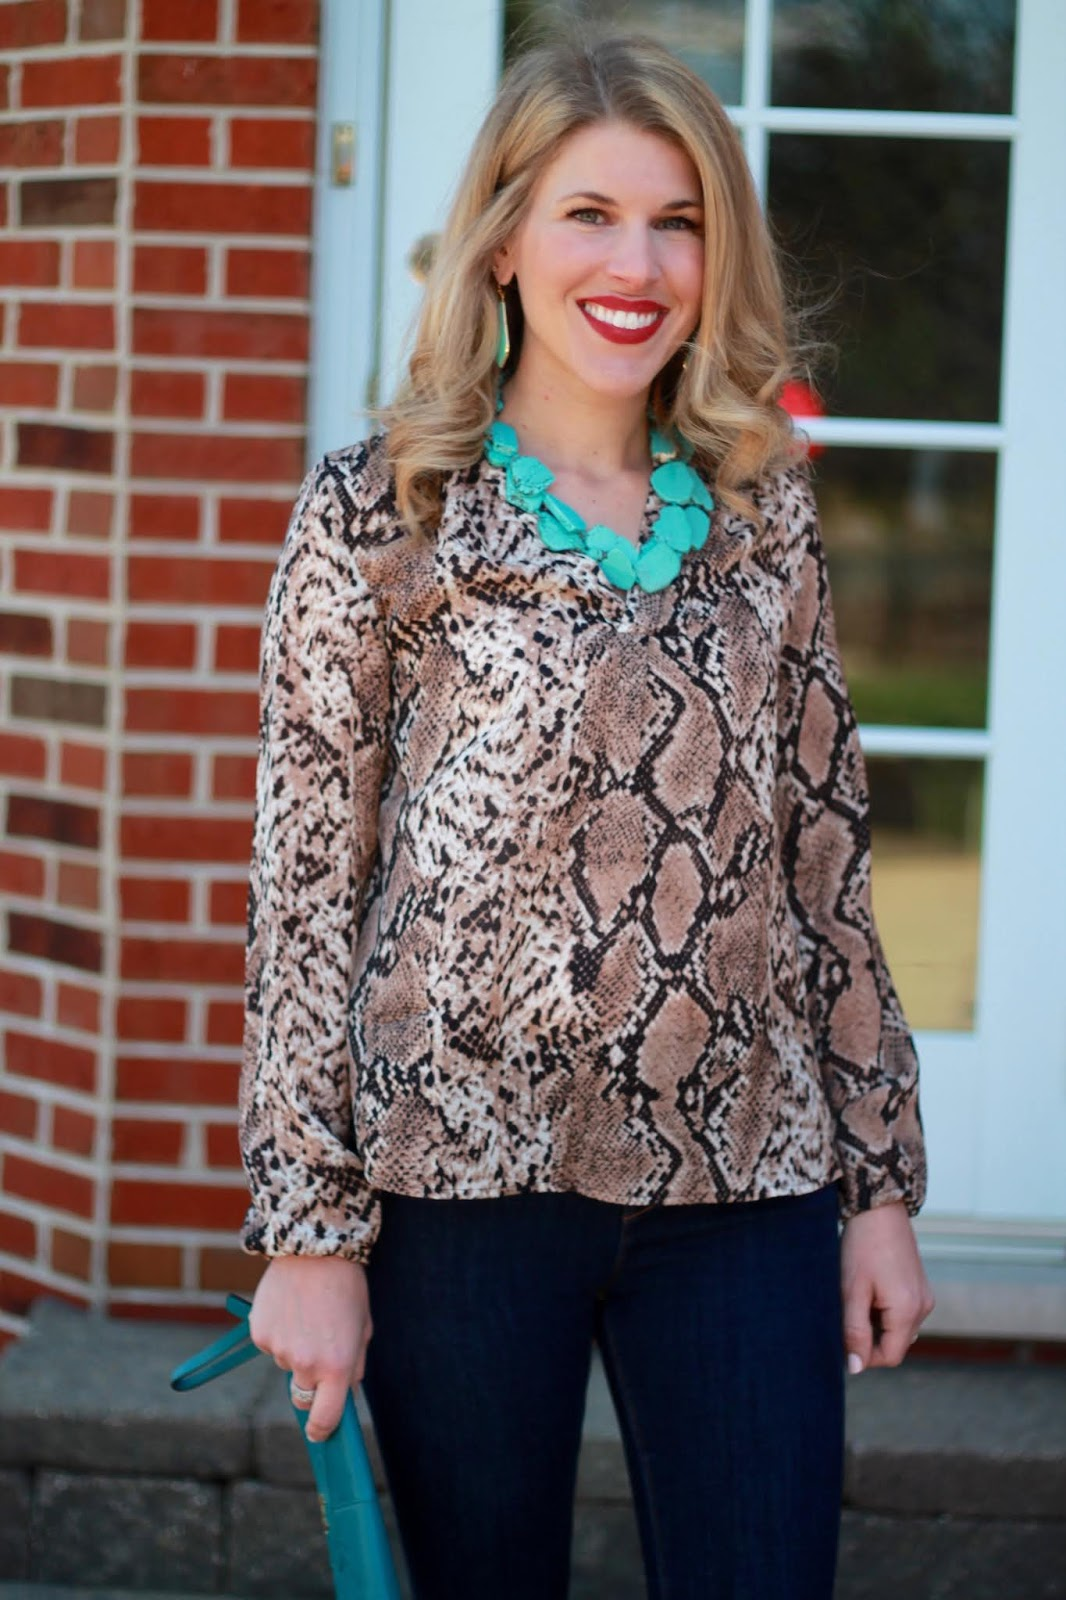 snakeskin blouse, turquoise accessories, grey peep toe booties